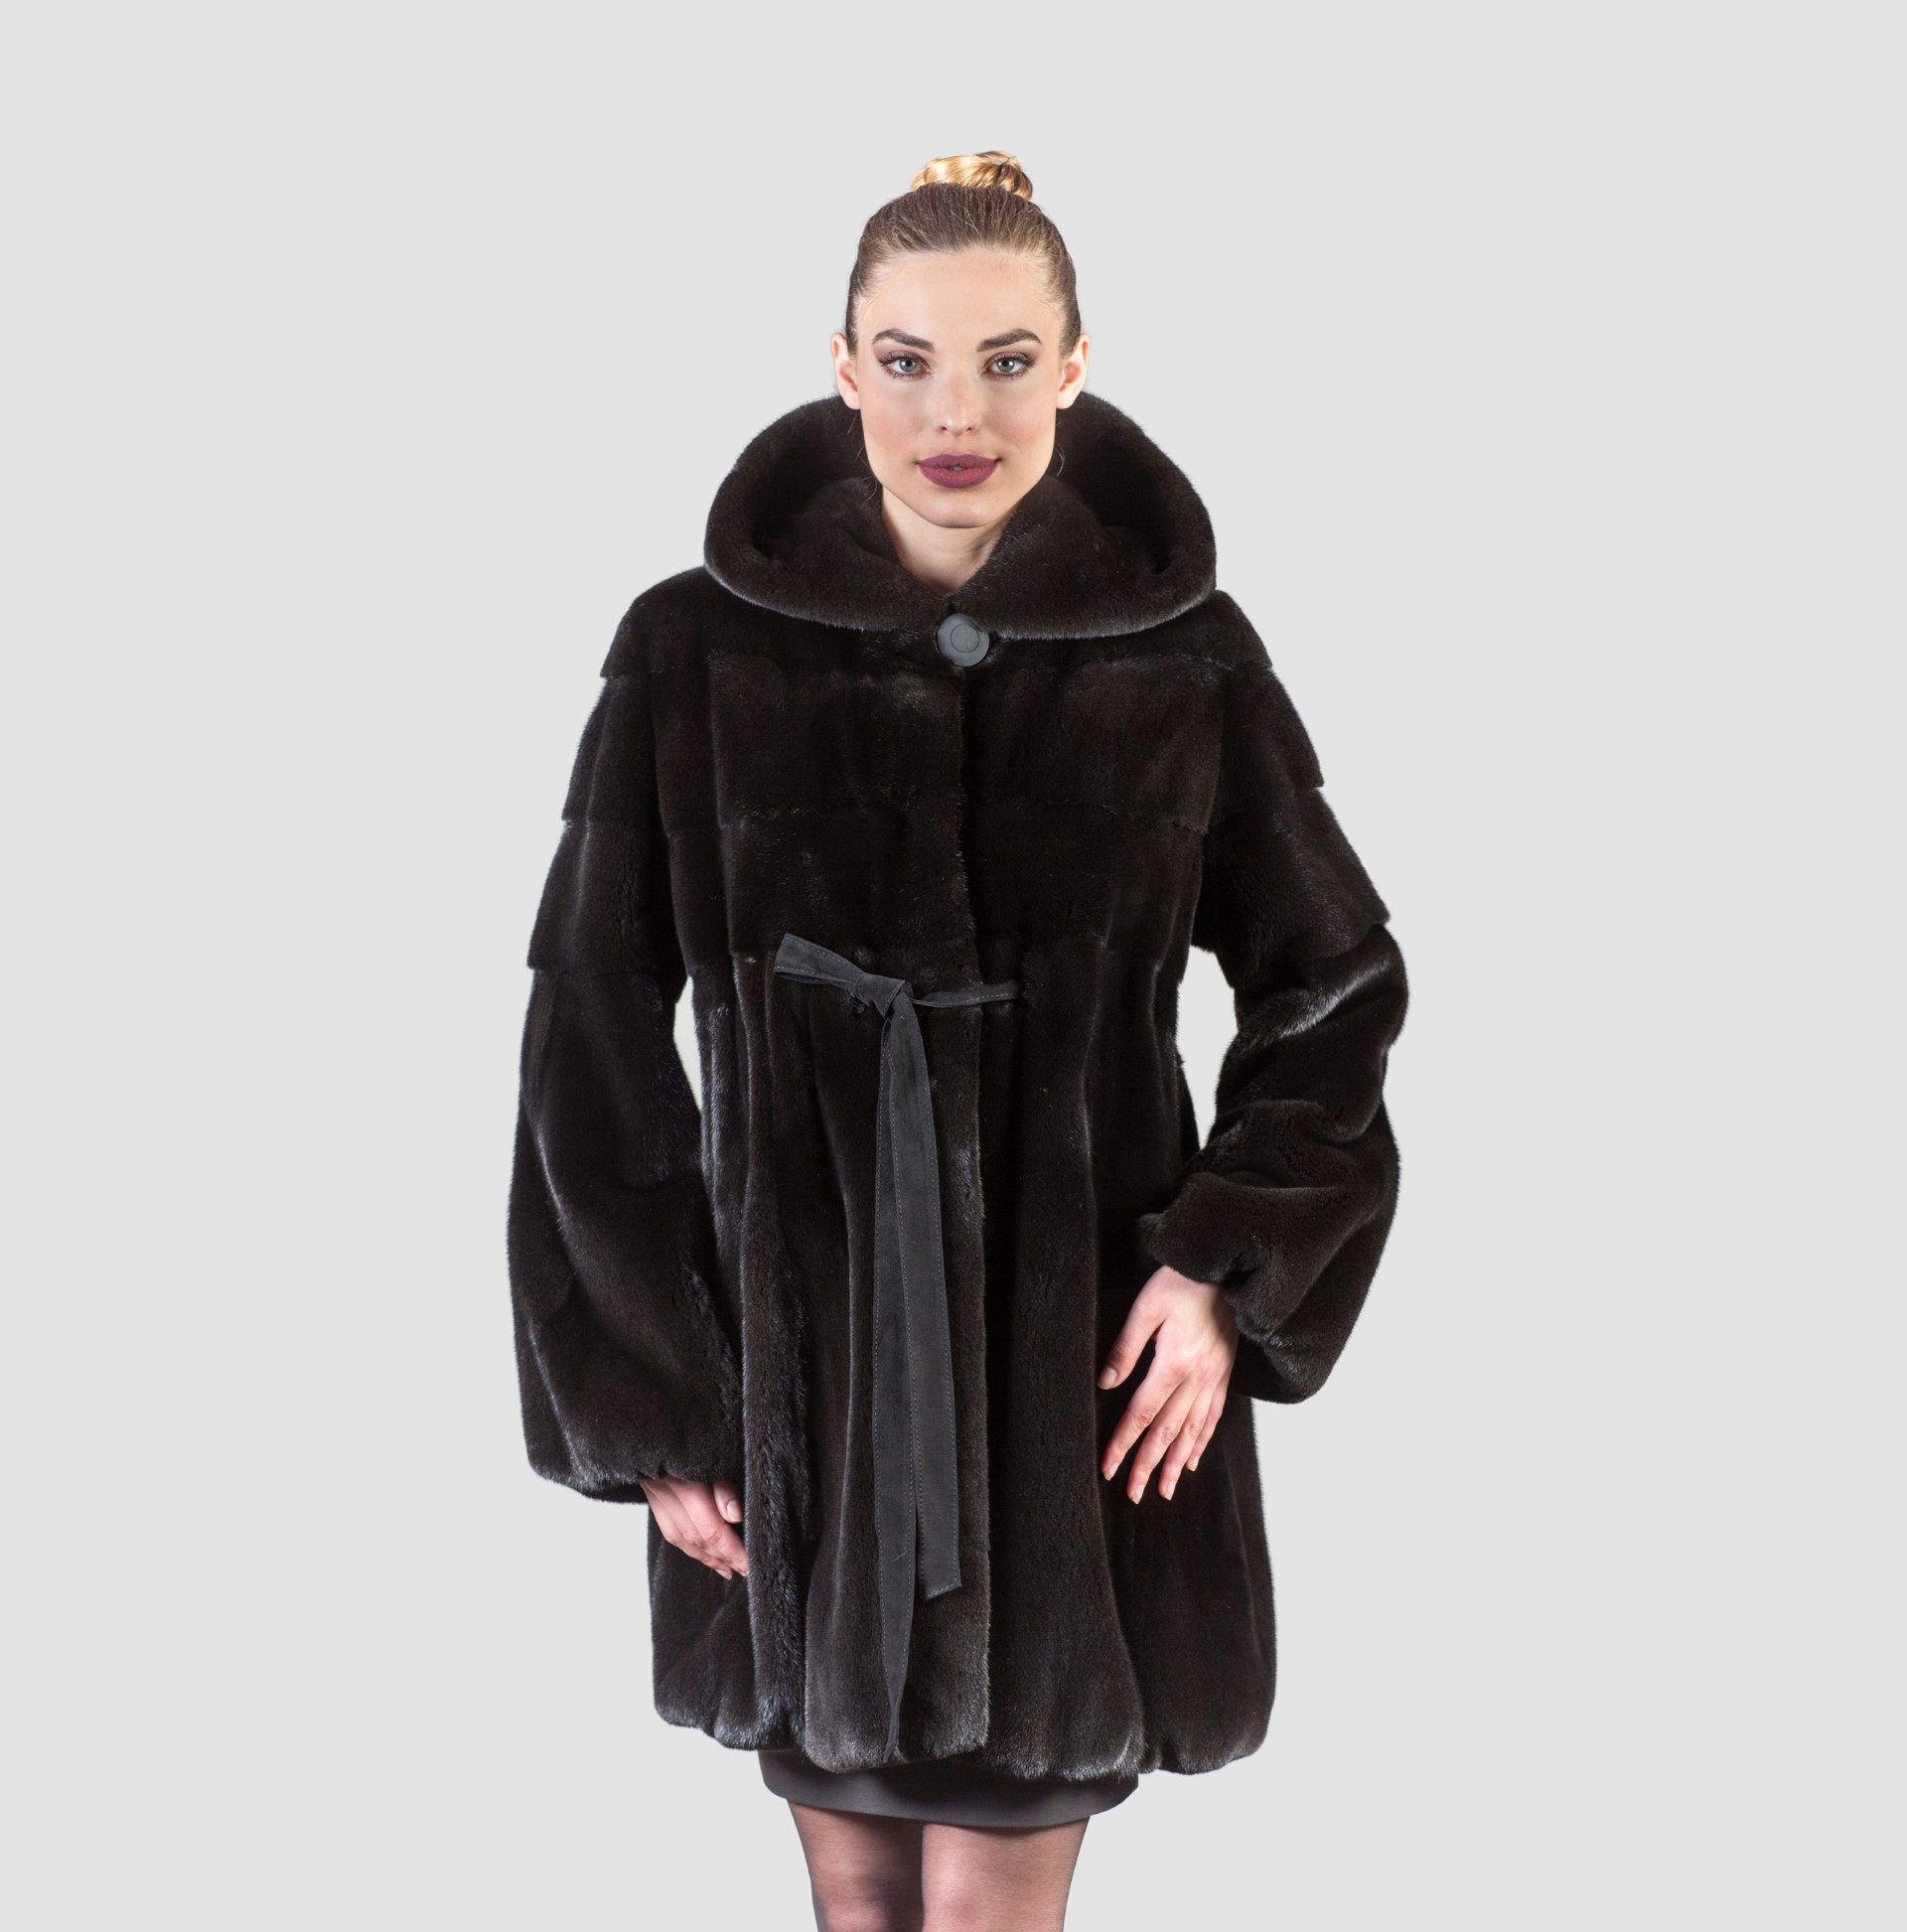 Blackglama Mink Fur Coat With Hood - Real Fur Coats , Vests ...